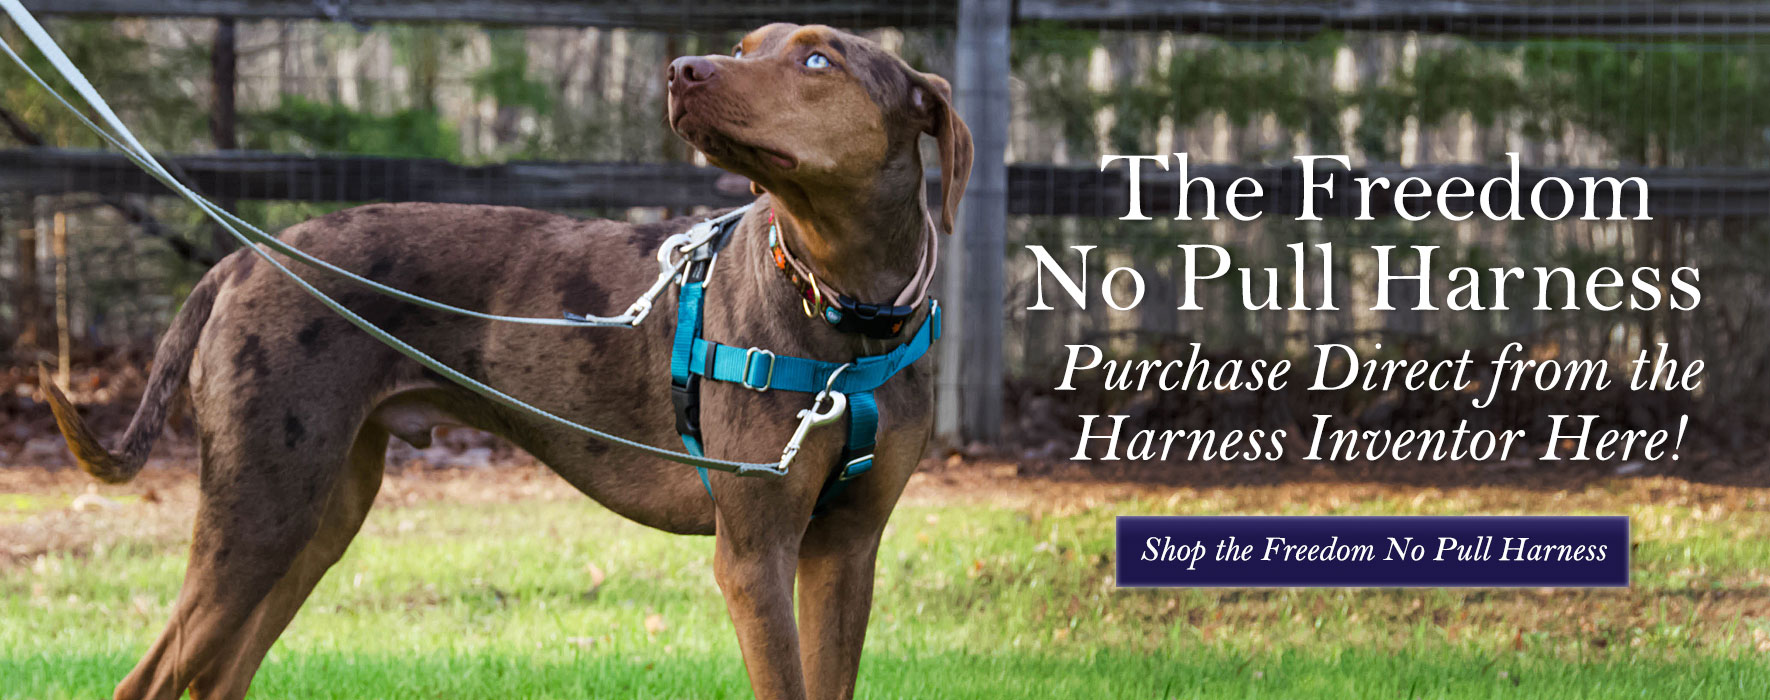 Shop the Freedom No Pull Harness